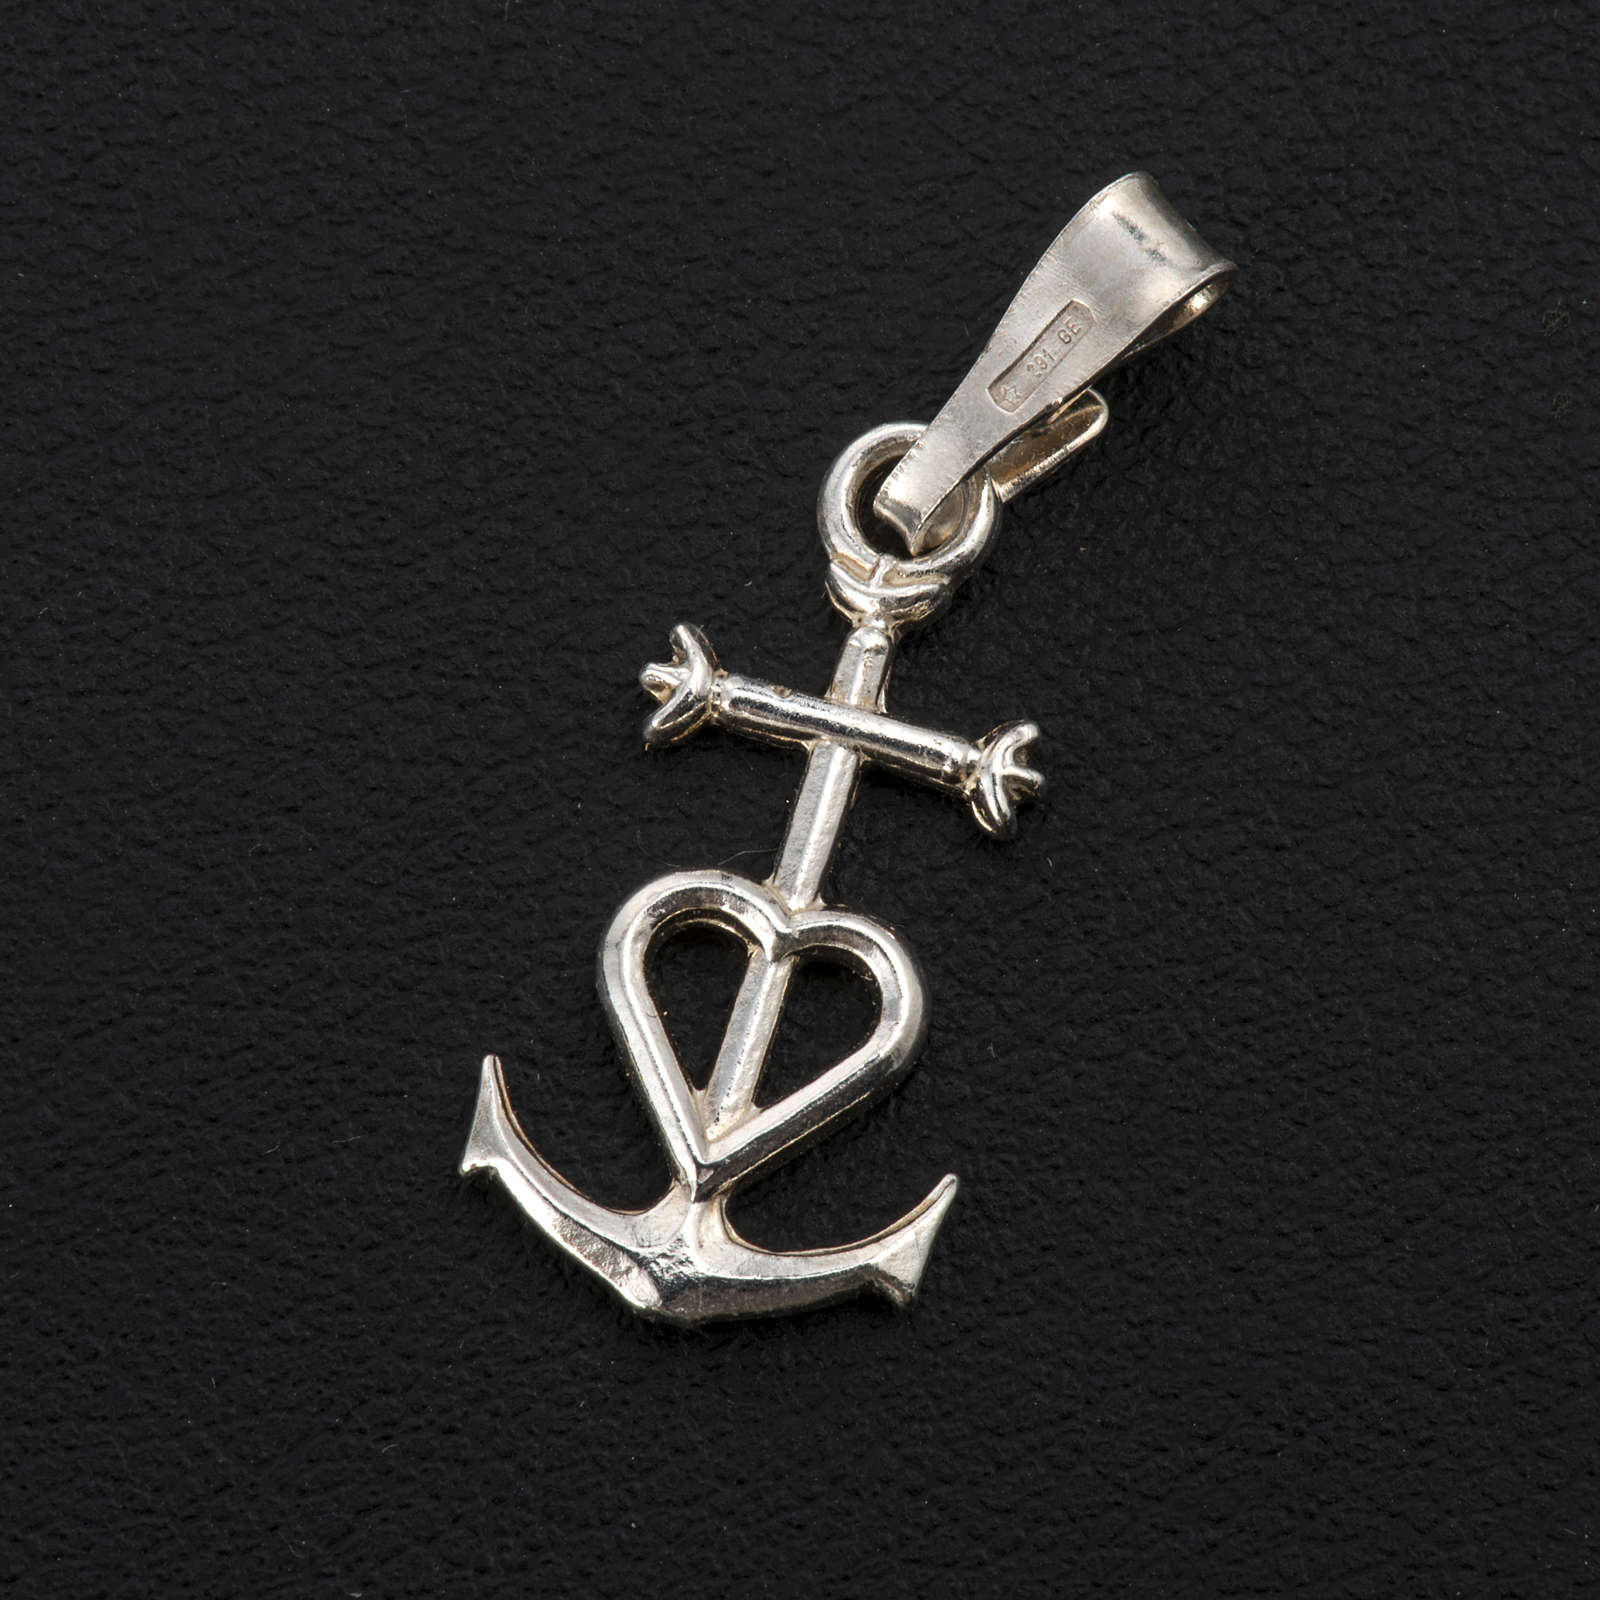 Faith hope and charity pendant in silver 925 4